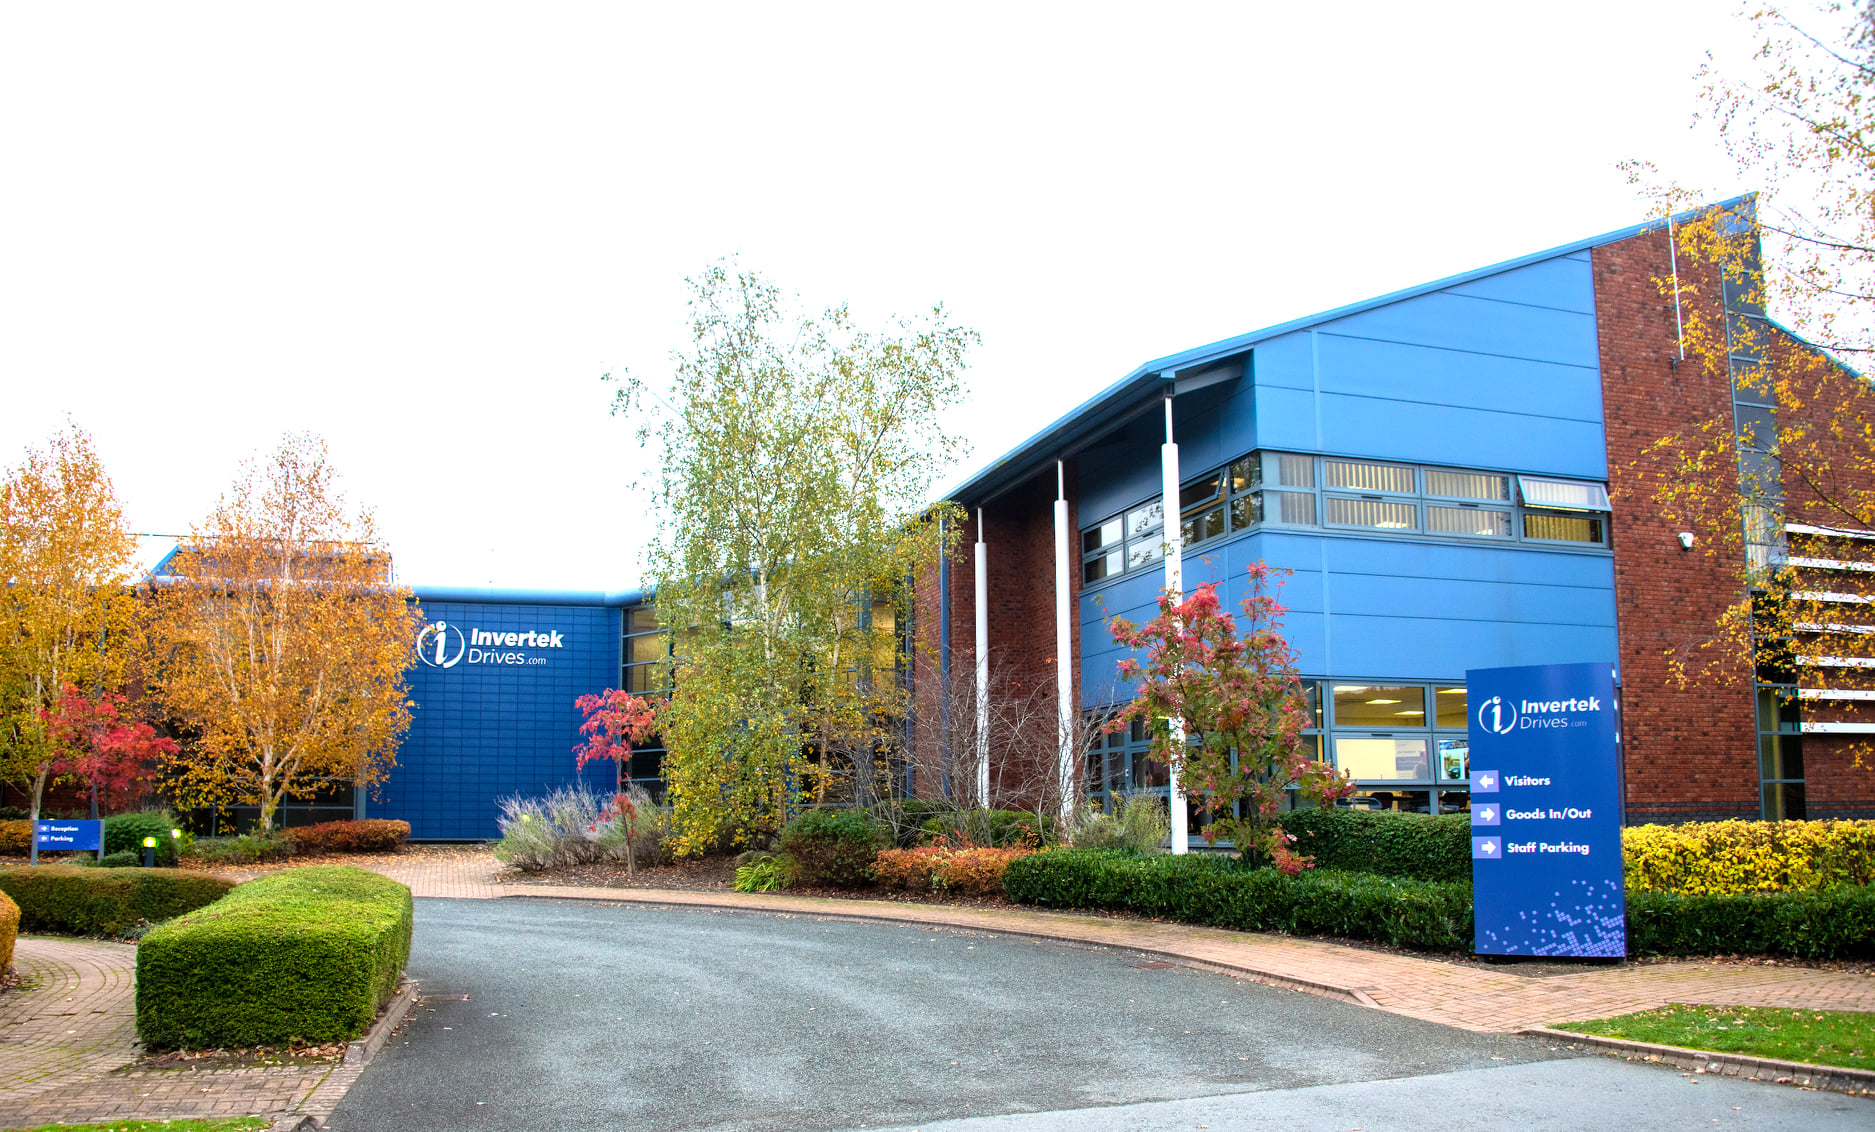 Record sales fuel investment, expansion and recruitment at Invertek Drives